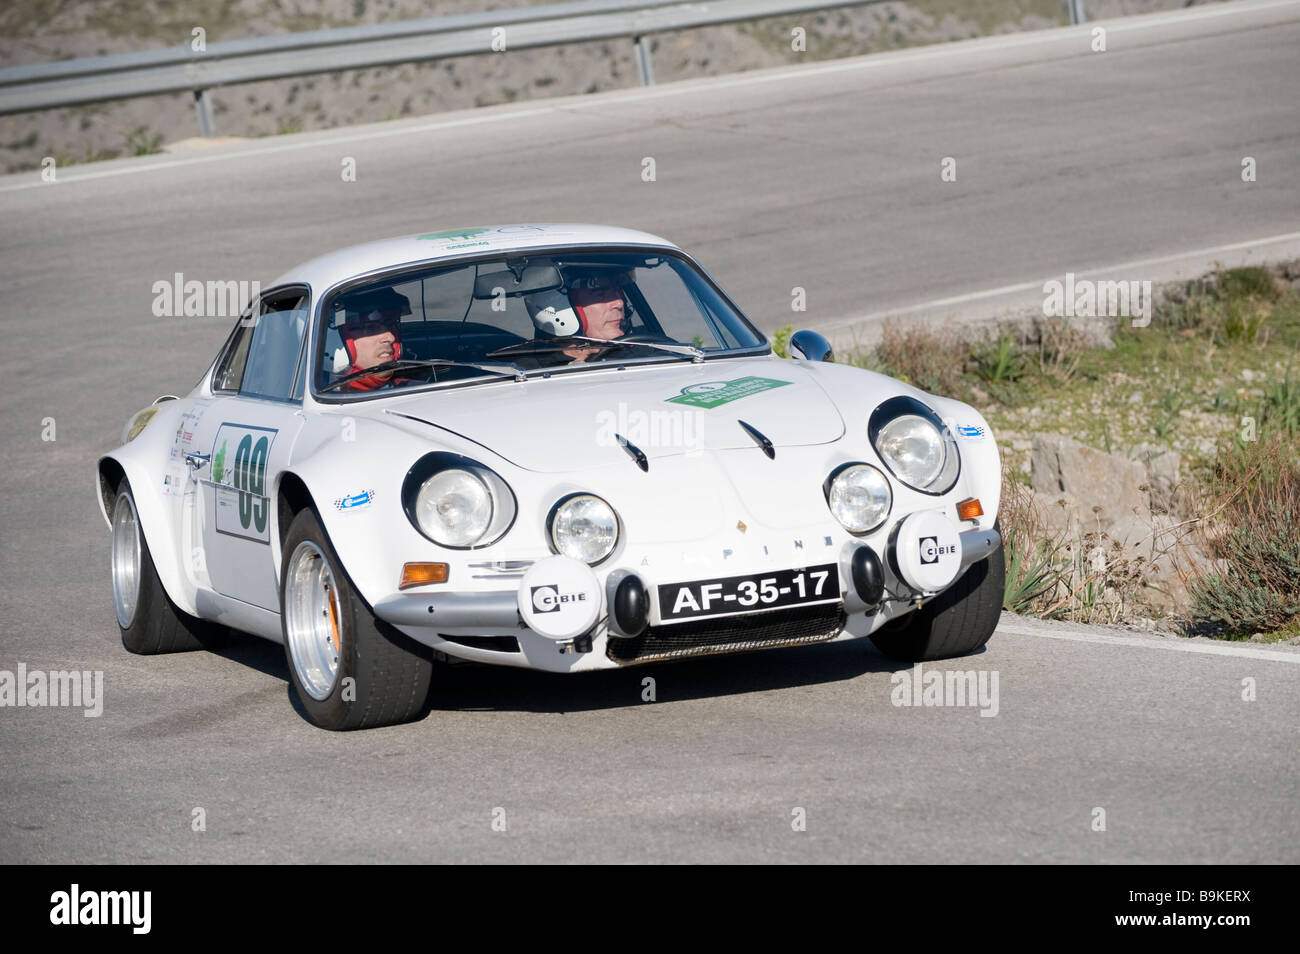 white renault alpine a110 berlinette sports car racing in the classic stock photo royalty free. Black Bedroom Furniture Sets. Home Design Ideas